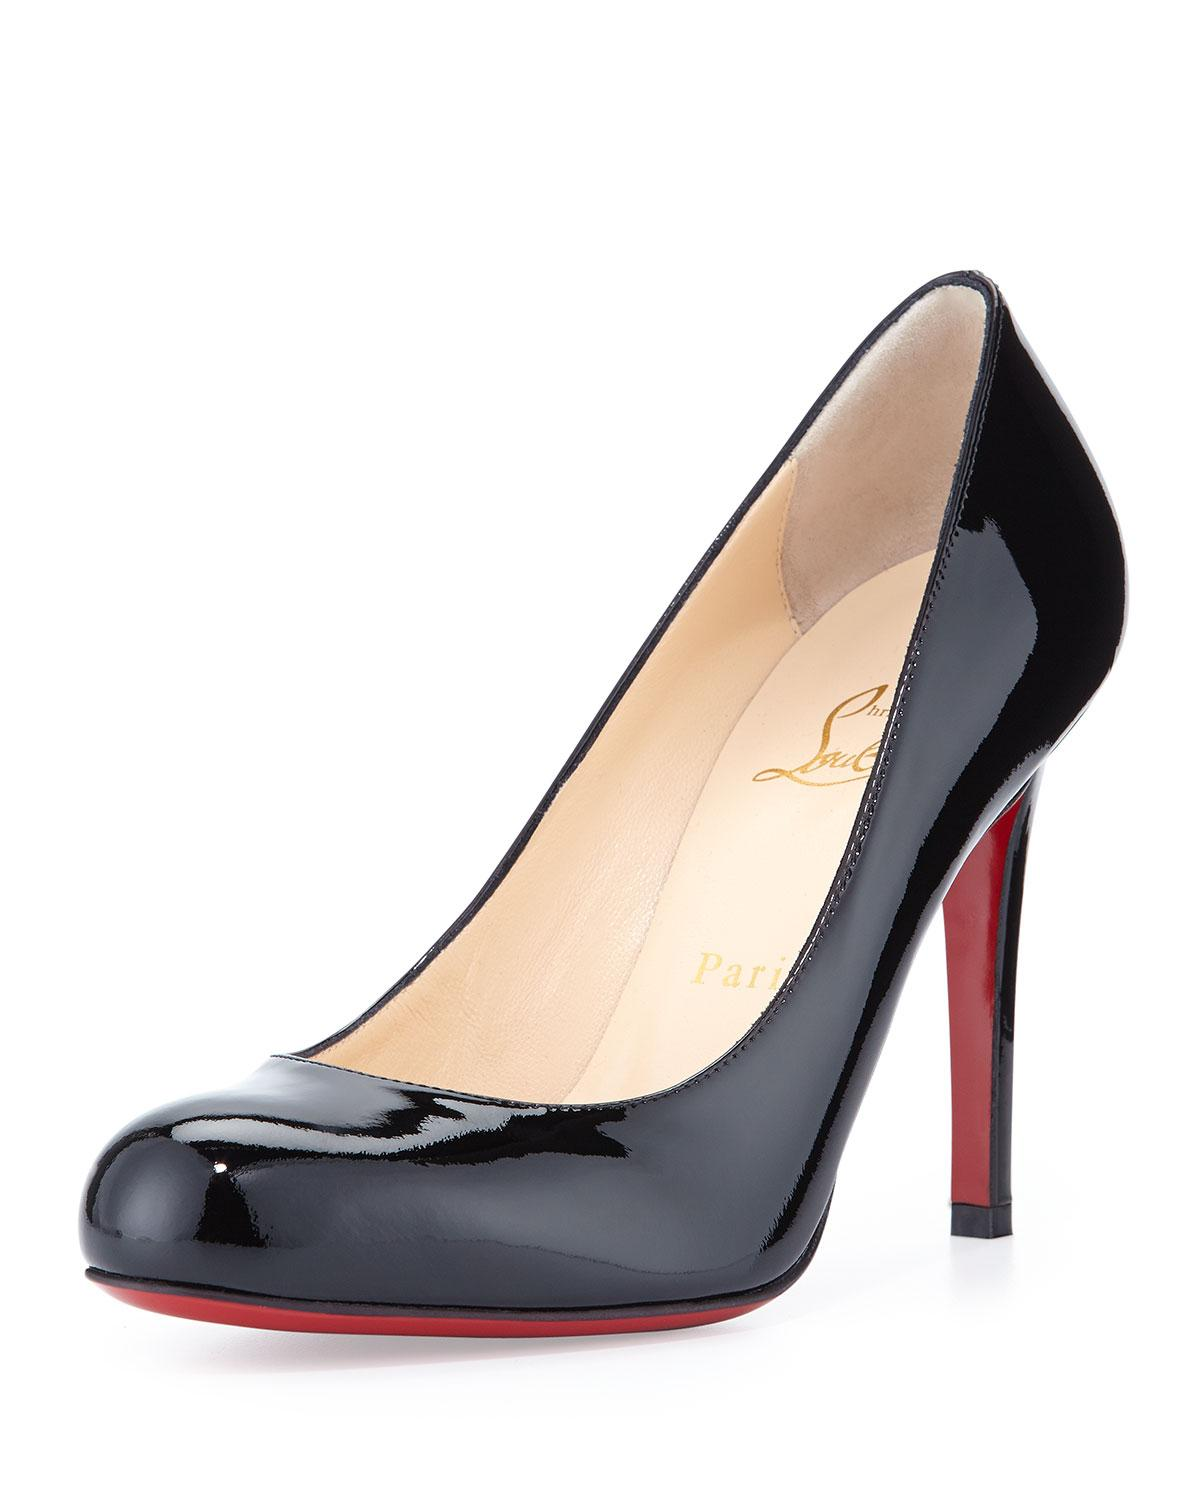 d9b4dd0be66e Lyst - Christian Louboutin Simple Patent Red Sole Pumps in Red - Save 3%